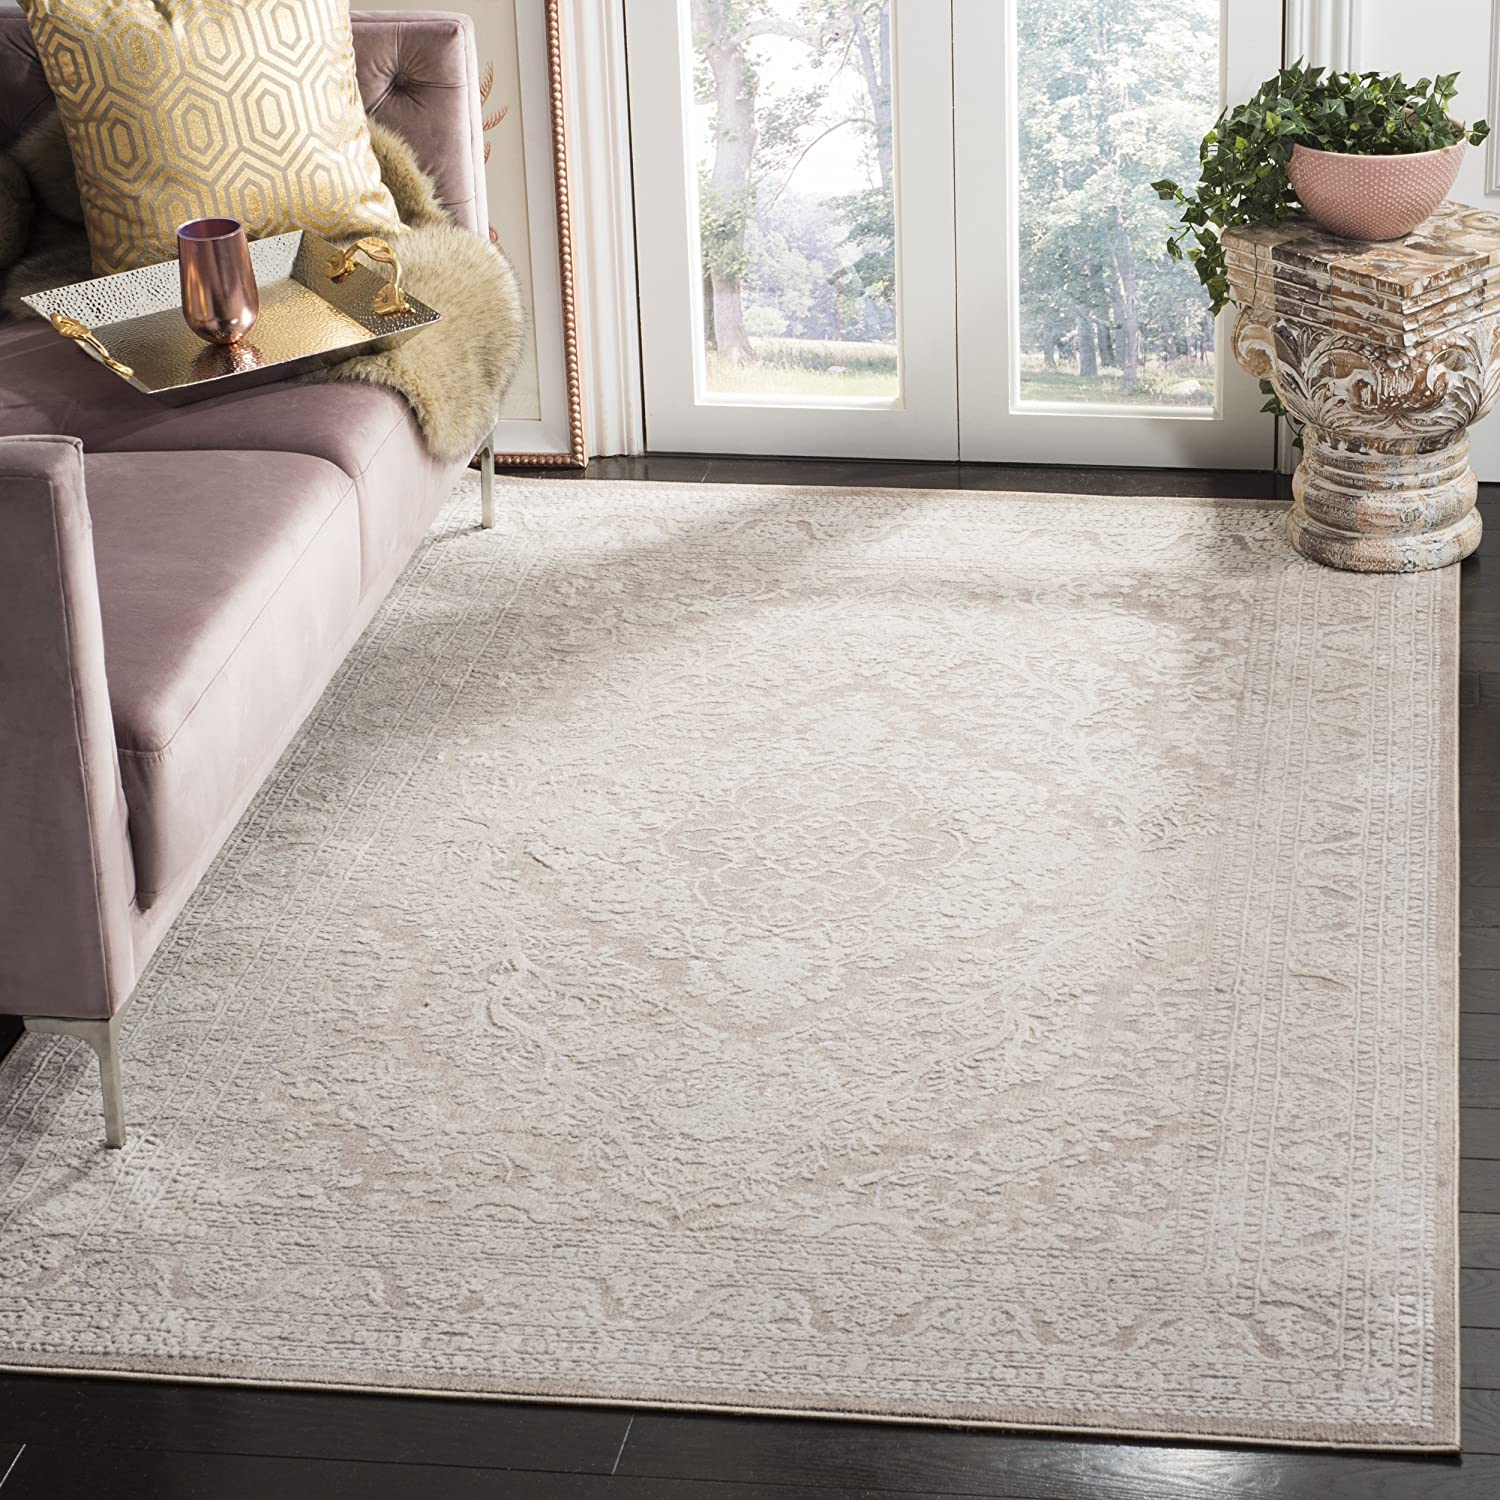 Safavieh Reflection Collection RFT668A Vintage Distressed Area Rug, 6' x 9', Beige / Cream